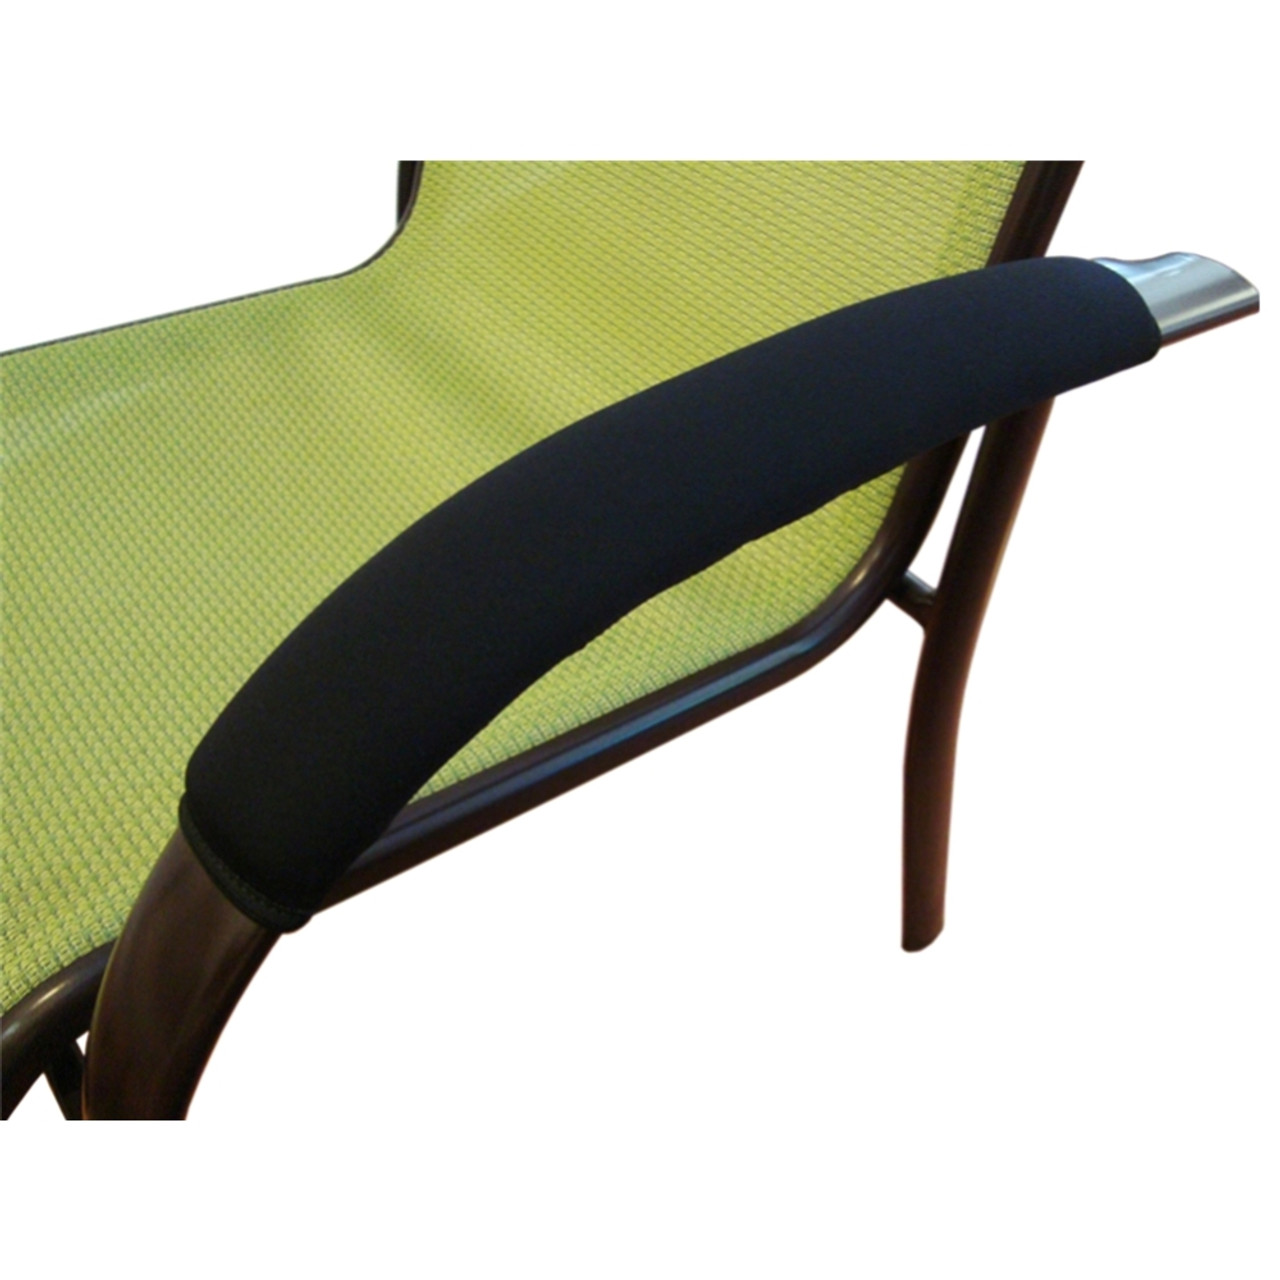 Chair Armrest Covers